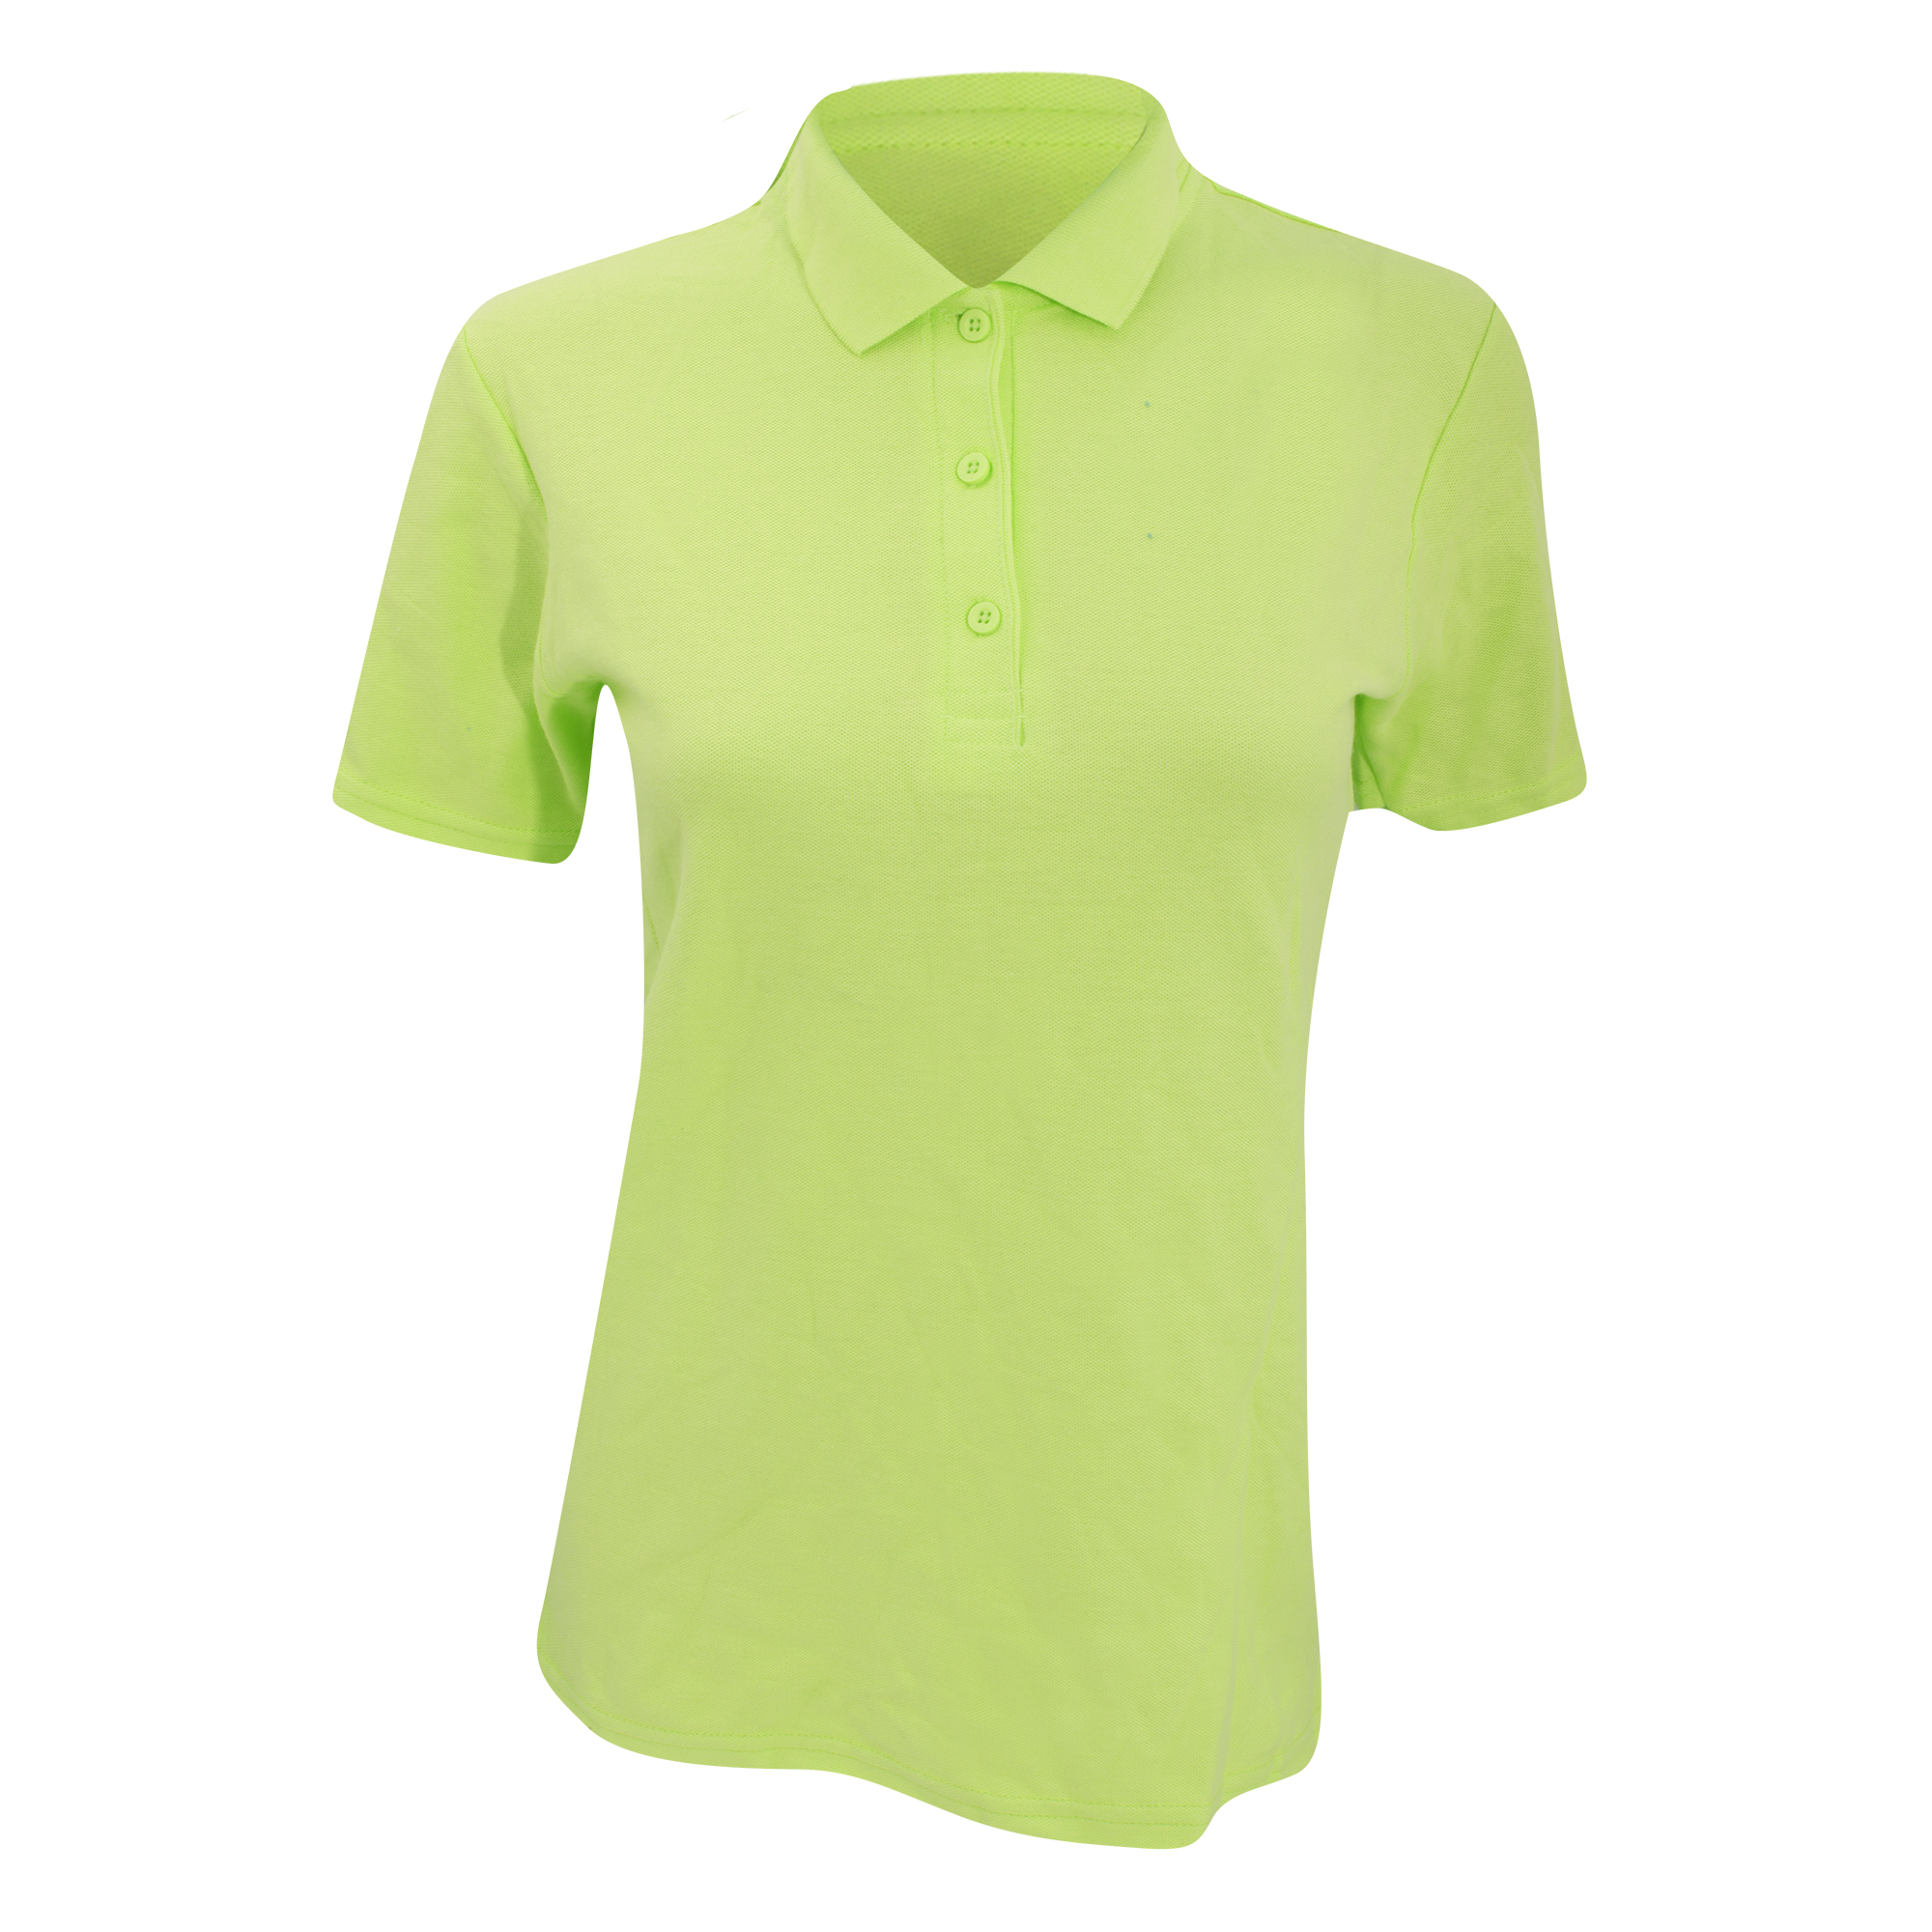 Anvil Womens/Ladies Double Pique Semi-Fitted Polo Shirt (M) (Key Lime)